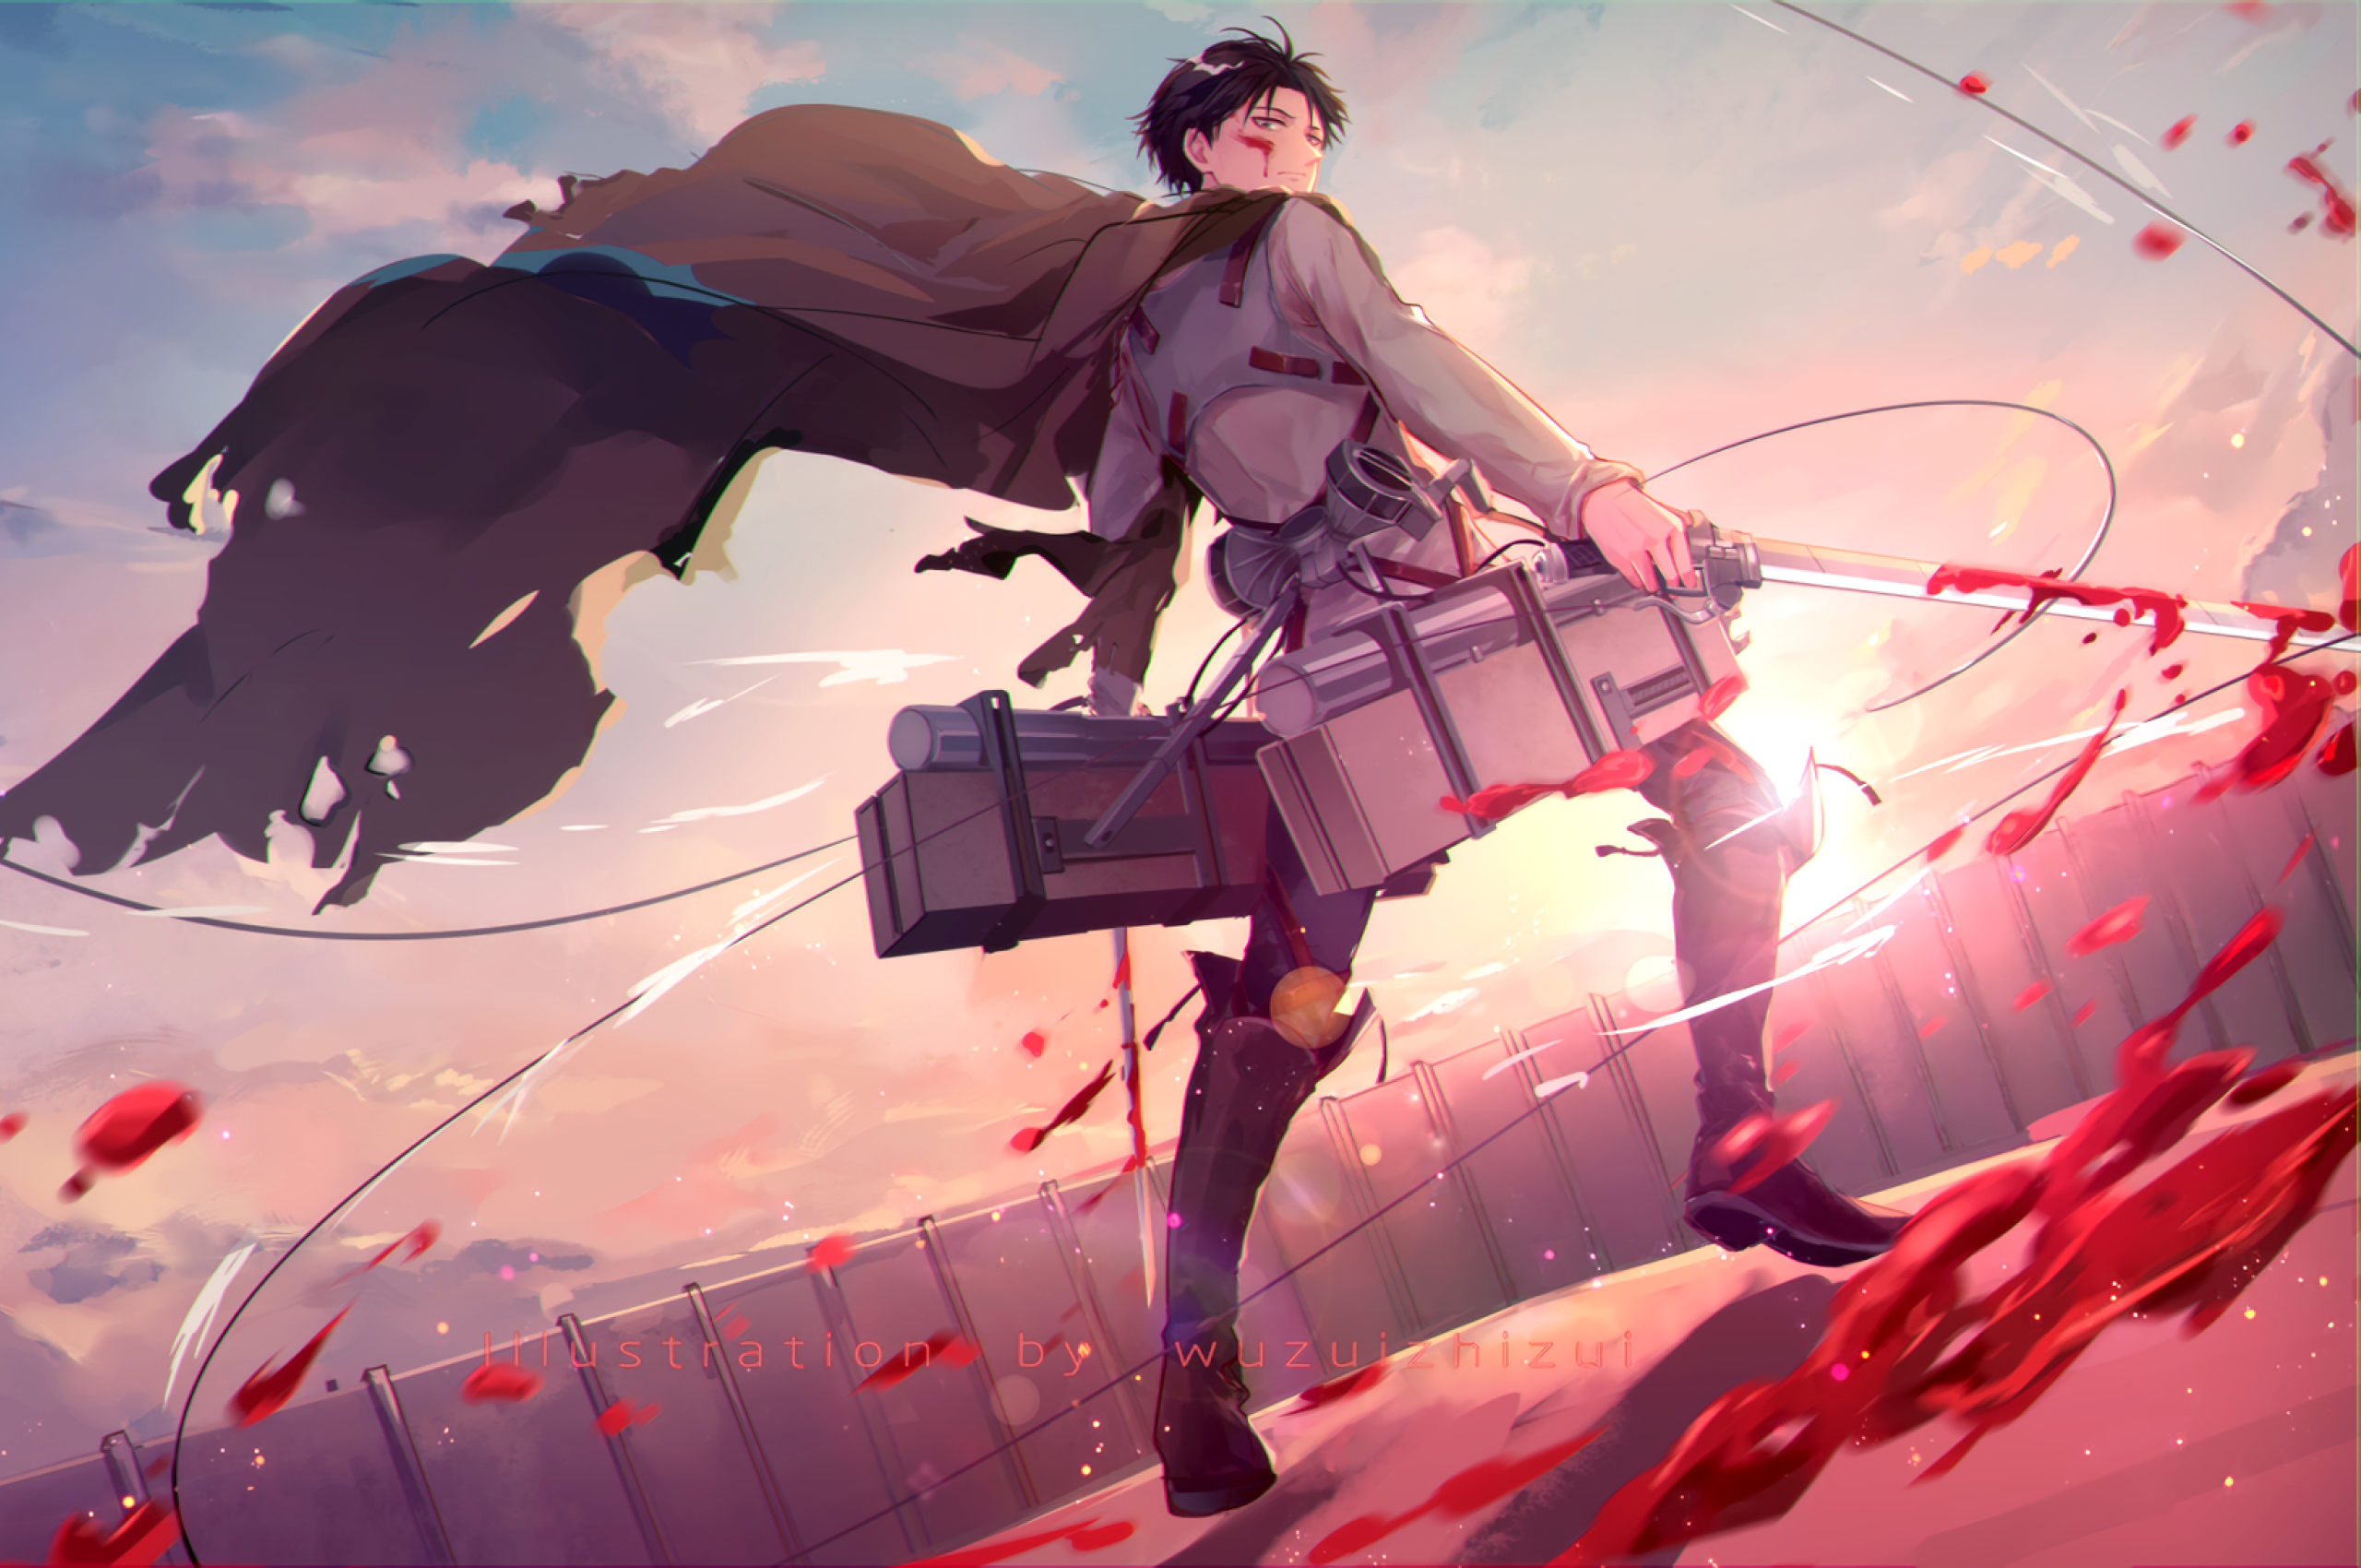 2560x1700 Levi Ackerman Chromebook Pixel Wallpaper Hd Anime 4k Wallpapers Images Photos And Background